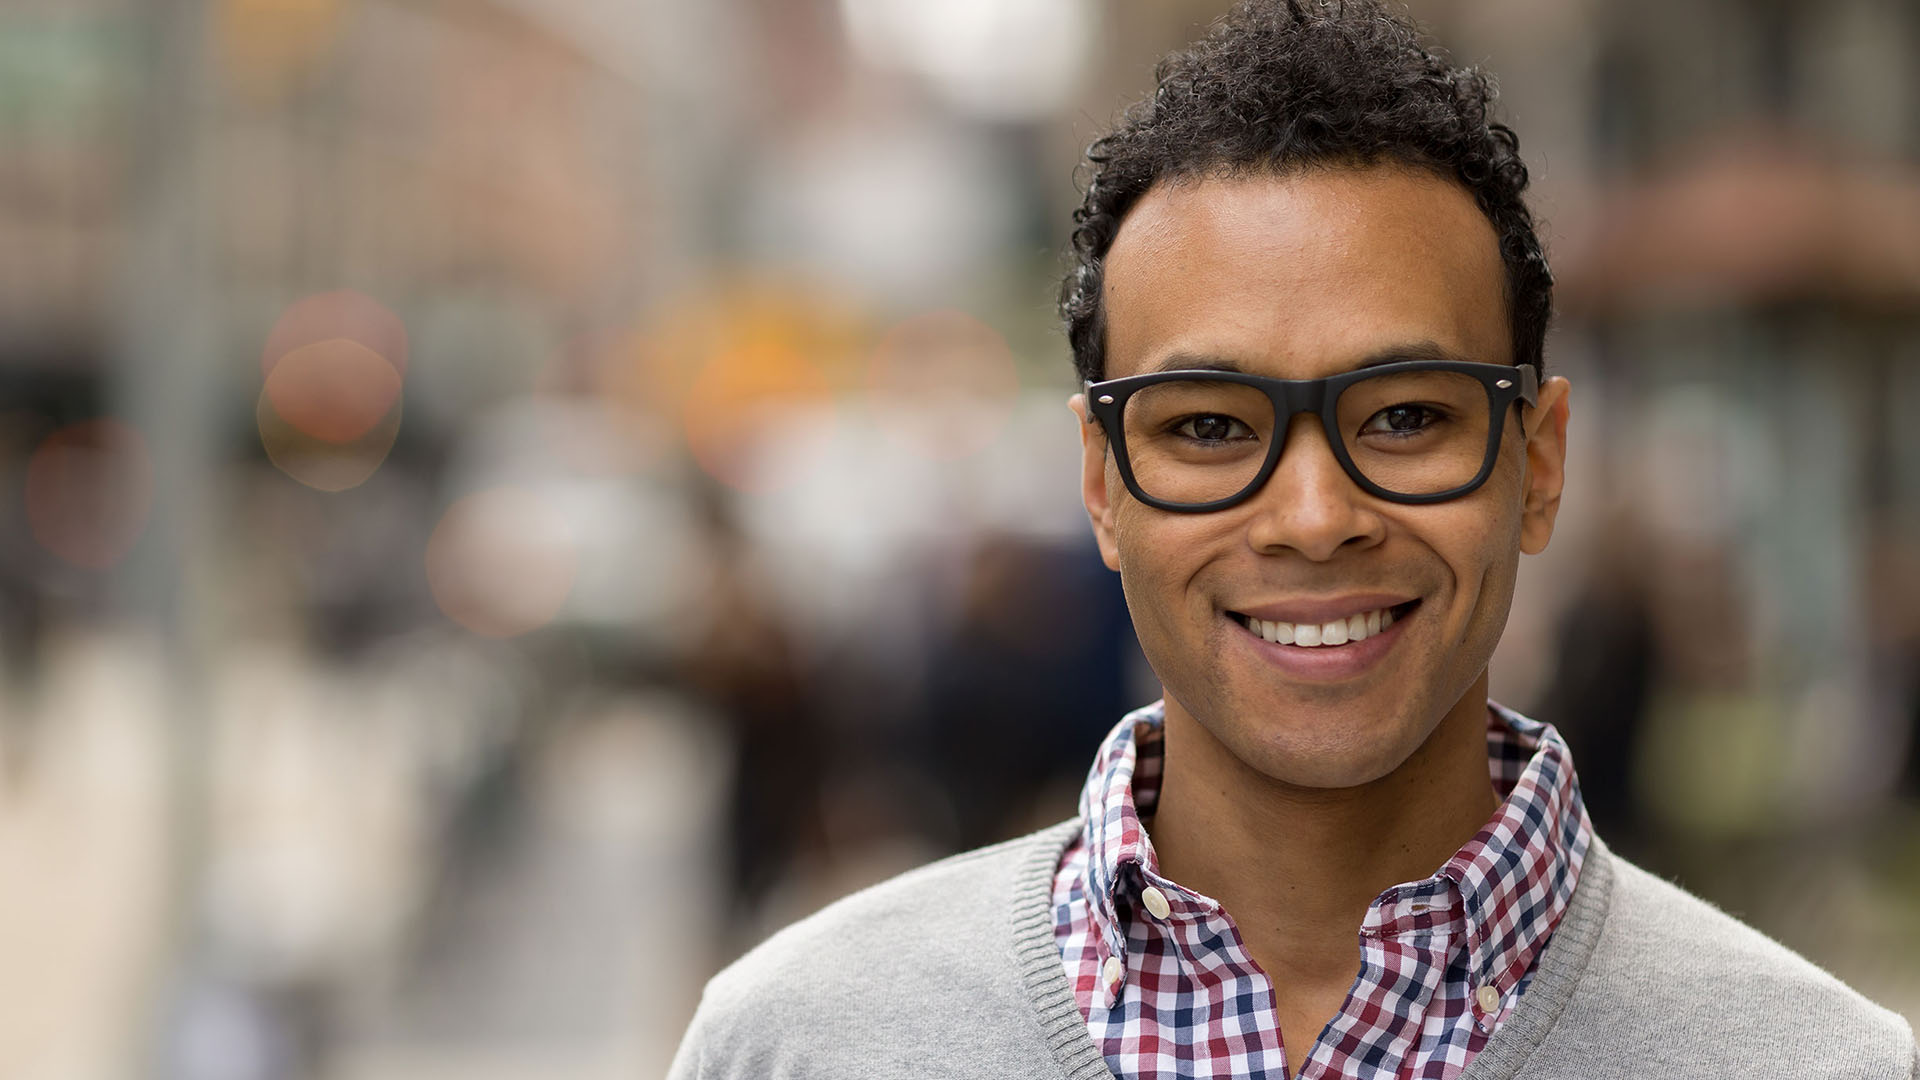 man of color with nice glasses smiling